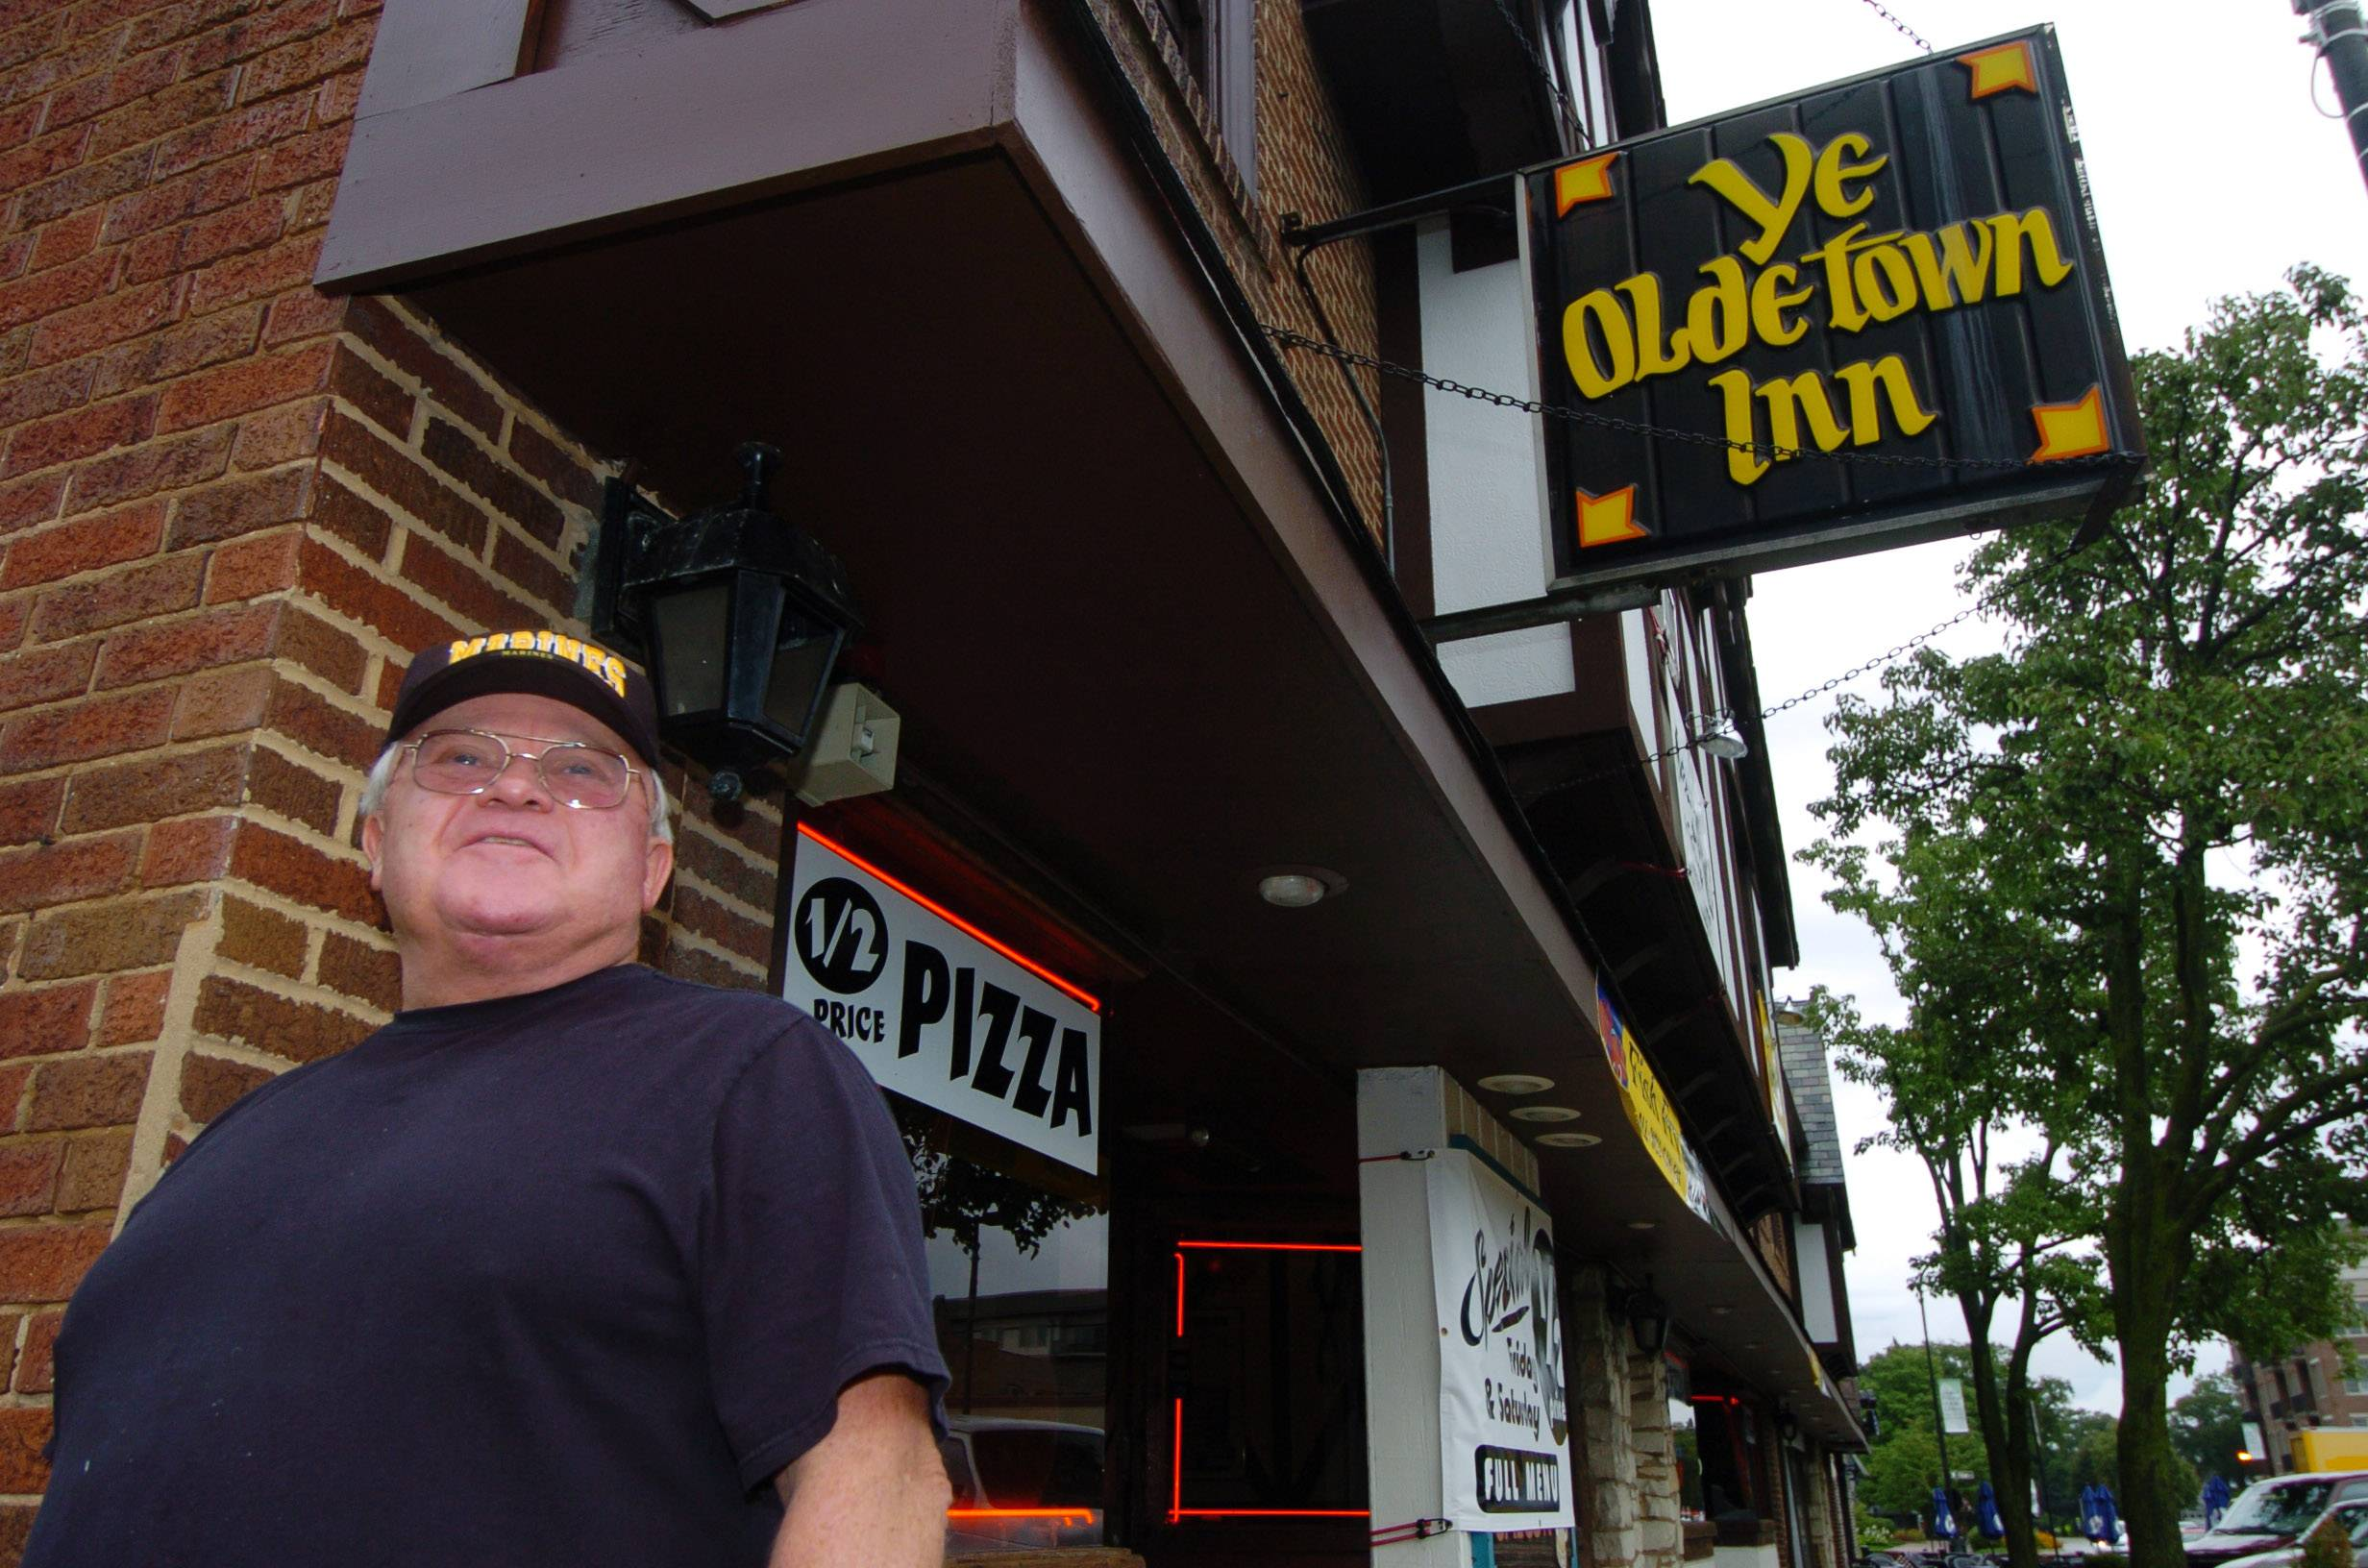 Mount Prospect settles with Ye Olde Town Inn for $6.5 million